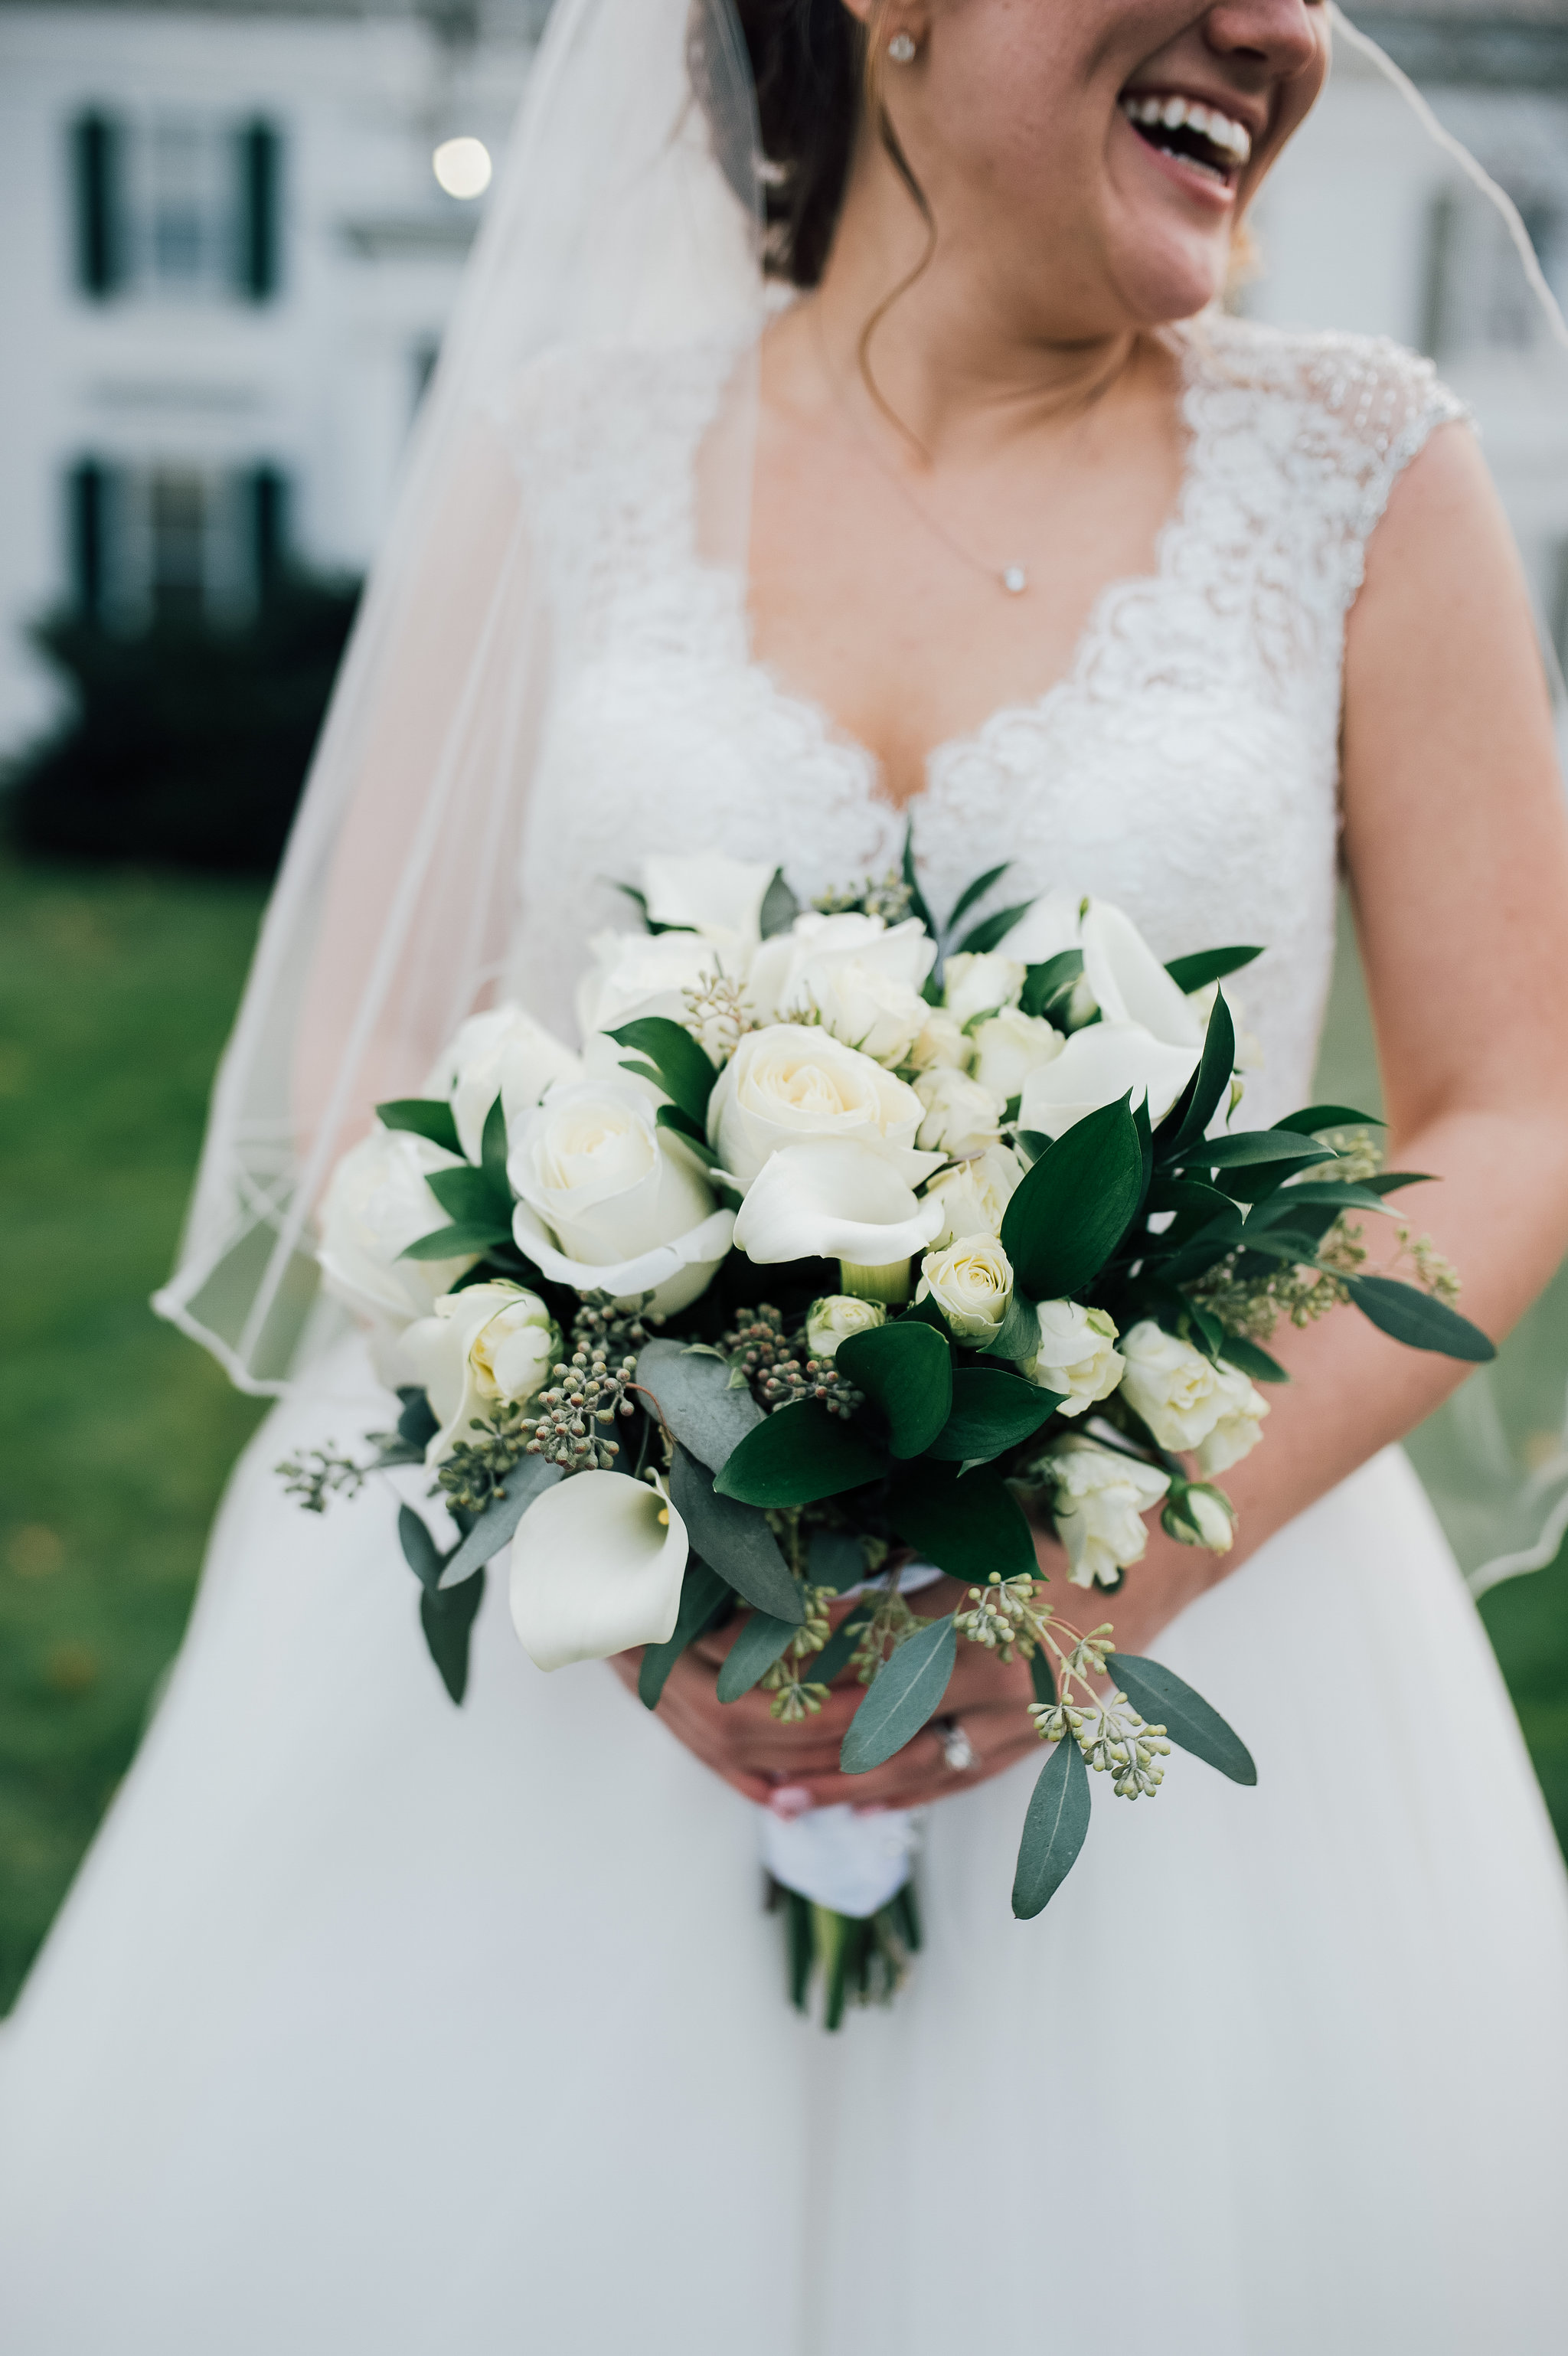 Wedding Bouquet Ideas from my 2017 Weddings by popular New York wedding Photographer Laurel Creative